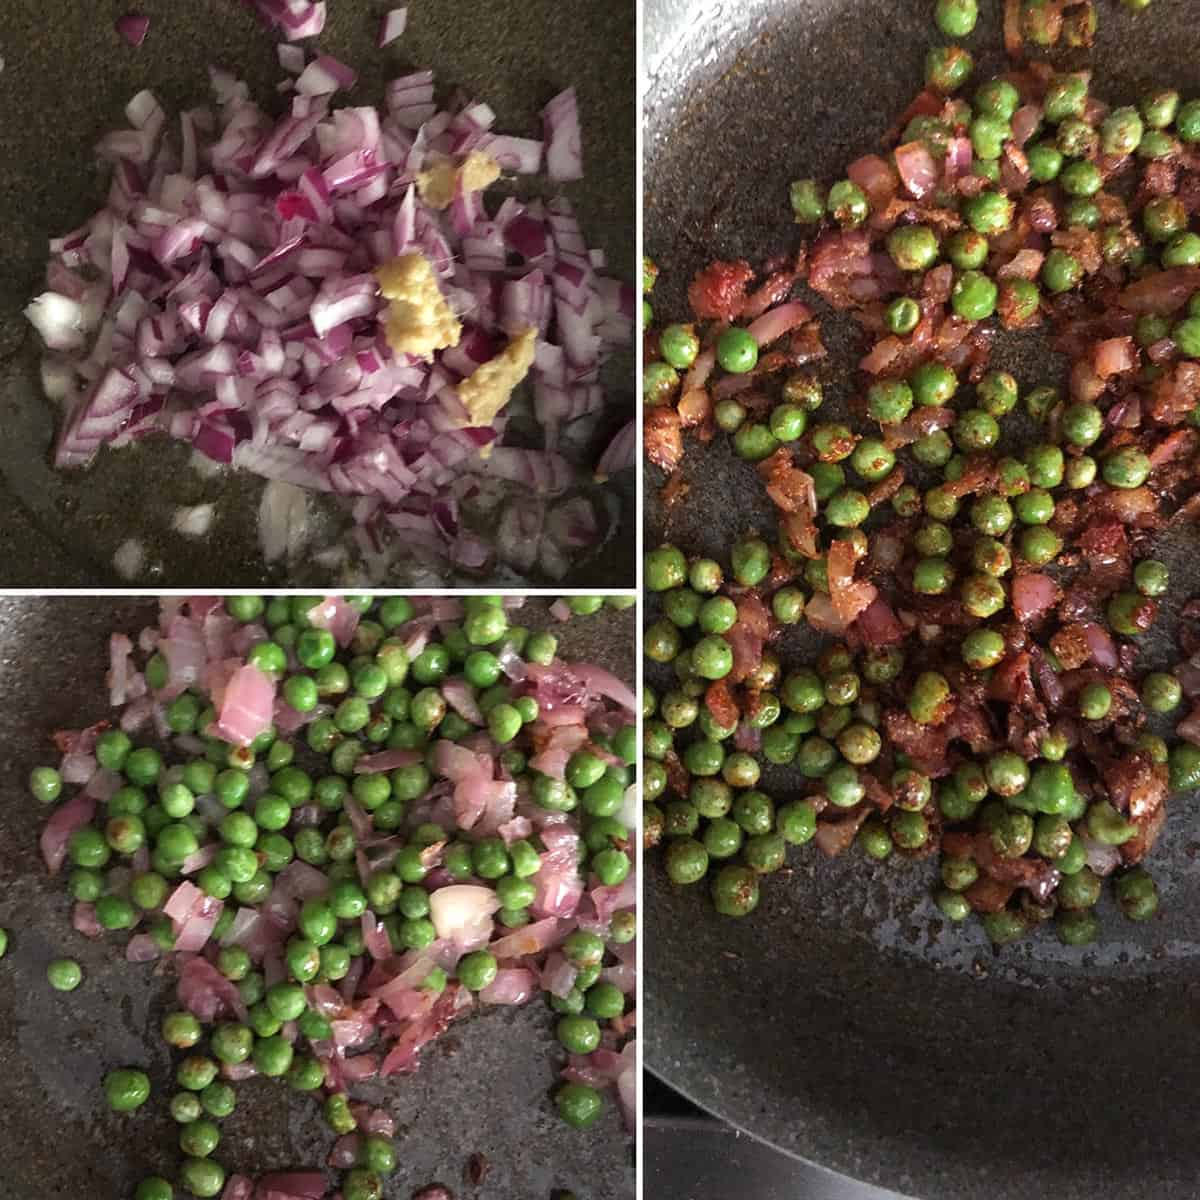 Sautéing red onions and green peas in a nonstick pan